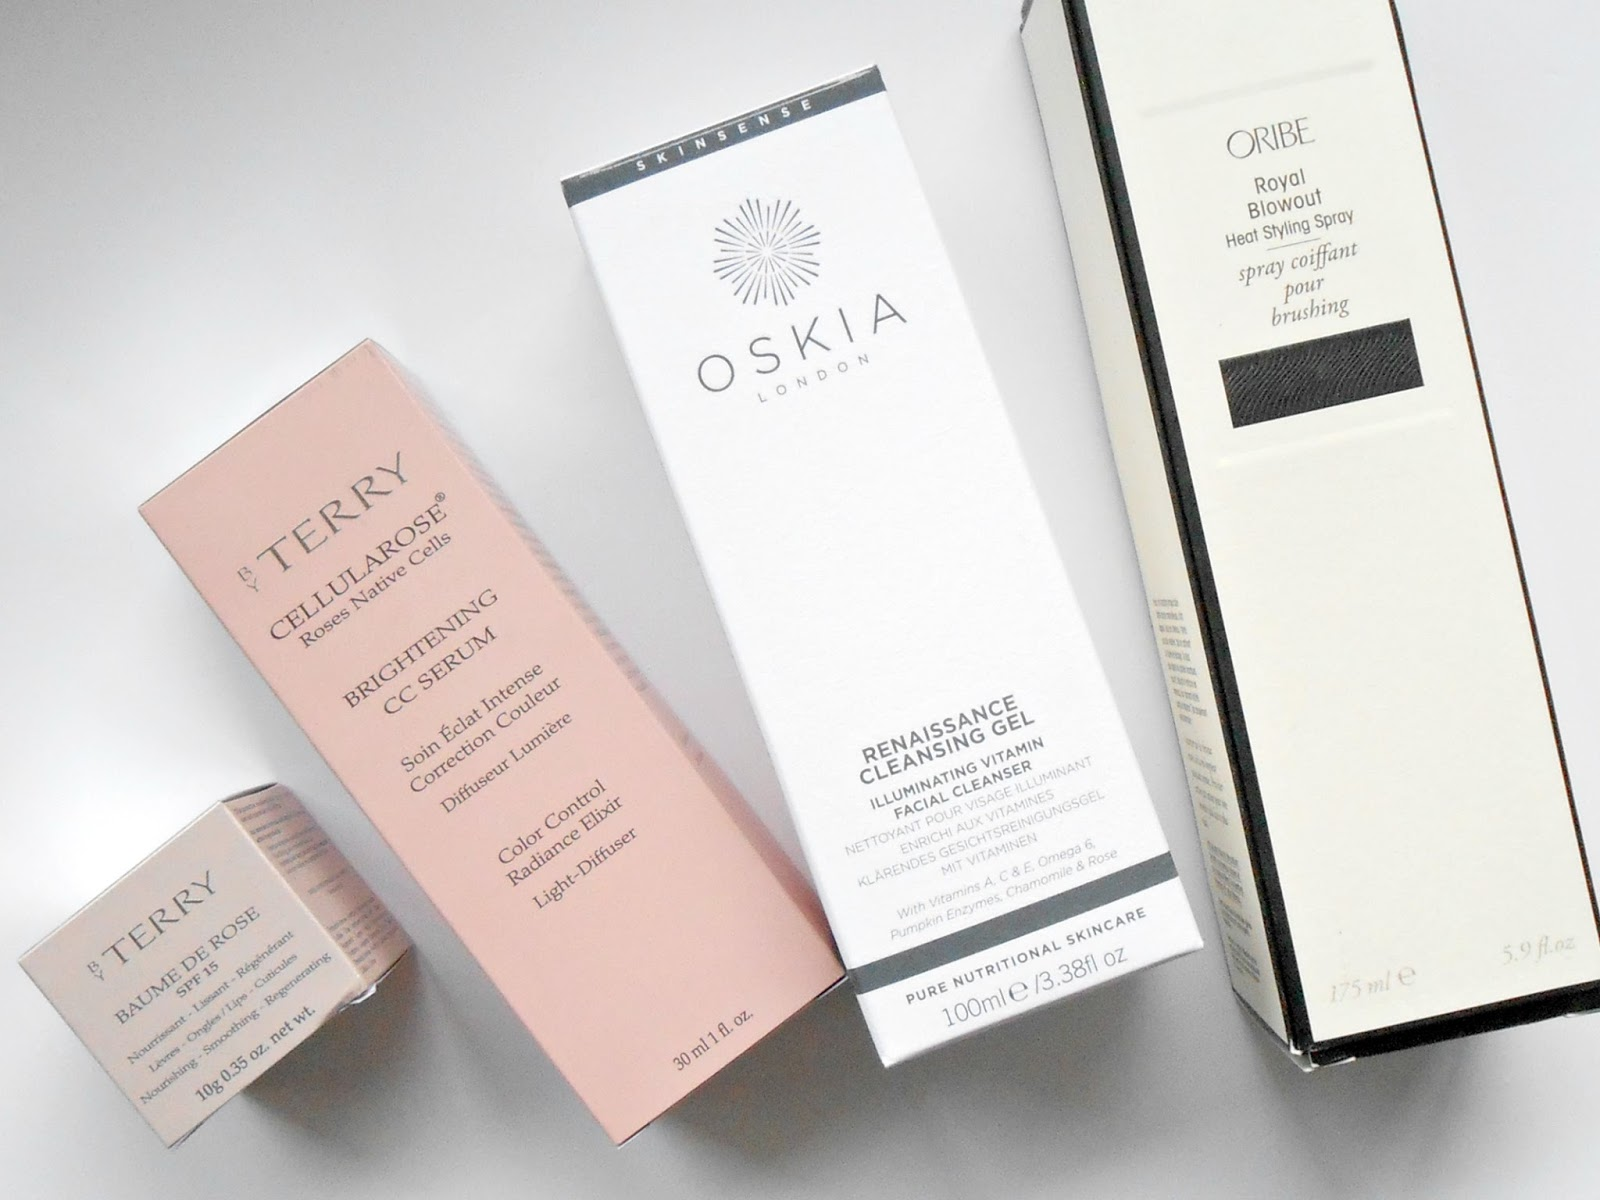 High End Skincare Haul from Space NK